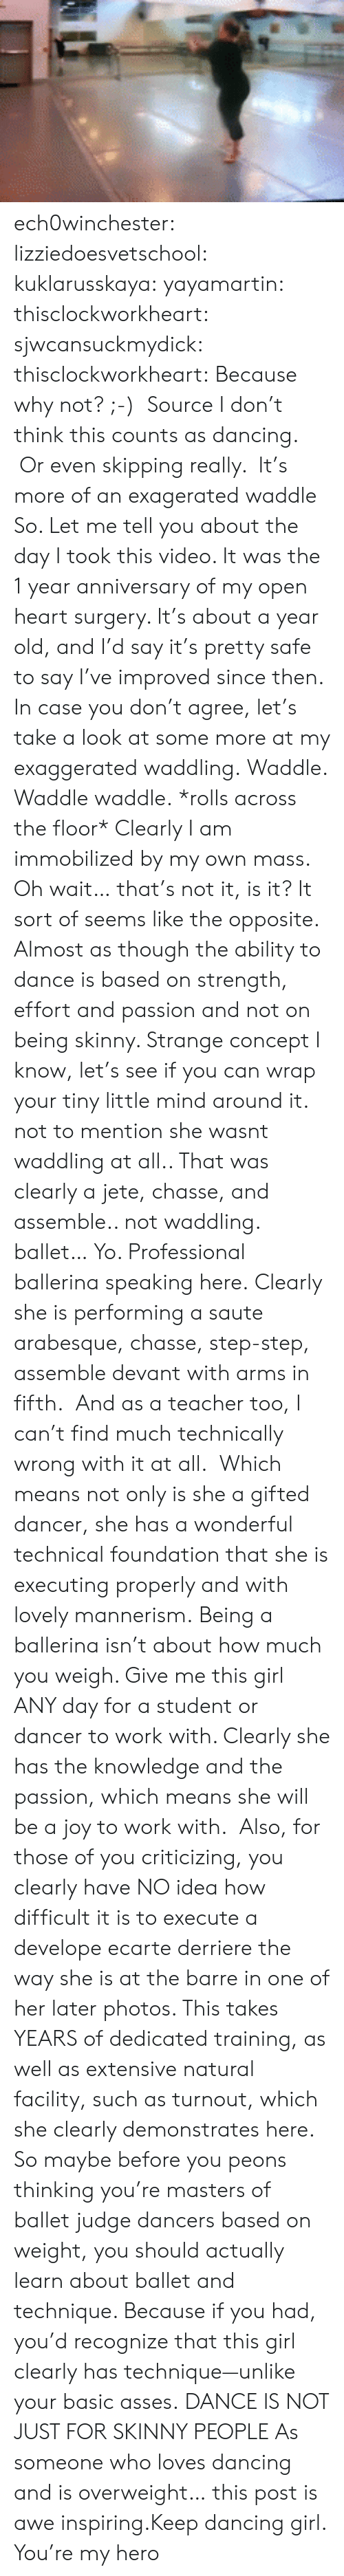 develope: ech0winchester:  lizziedoesvetschool: kuklarusskaya:  yayamartin:  thisclockworkheart:  sjwcansuckmydick:  thisclockworkheart:  Because why not? ;-) Source  I don't think this counts as dancing. Or even skipping really. It's more of an exagerated waddle  So. Let me tell you about the day I took this video. It was the 1 year anniversary of my open heart surgery. It's about a year old, and I'd say it's pretty safe to say I've improved since then. In case you don't agree, let's take a look at some more at my exaggerated waddling. Waddle. Waddle waddle. *rolls across the floor* Clearly I am immobilized by my own mass. Oh wait… that's not it, is it? It sort of seems like the opposite. Almost as though the ability to dance is based on strength, effort and passion and not on being skinny. Strange concept I know, let's see if you can wrap your tiny little mind around it.  not to mention she wasnt waddling at all.. That was clearly a jete, chasse, and assemble.. not waddling. ballet…   Yo. Professional ballerina speaking here. Clearly she is performing a saute arabesque, chasse, step-step, assemble devant with arms in fifth. And as a teacher too, I can't find much technically wrong with it at all. Which means not only is she a gifted dancer, she has a wonderful technical foundation that she is executing properly and with lovely mannerism. Being a ballerina isn't about how much you weigh. Give me this girl ANY day for a student or dancer to work with. Clearly she has the knowledge and the passion, which means she will be a joy to work with. Also, for those of you criticizing, you clearly have NO idea how difficult it is to execute a develope ecarte derriere the way she is at the barre in one of her later photos. This takes YEARS of dedicated training, as well as extensive natural facility, such as turnout, which she clearly demonstrates here. So maybe before you peons thinking you're masters of ballet judge dancers based on weight, you should actually learn about ba